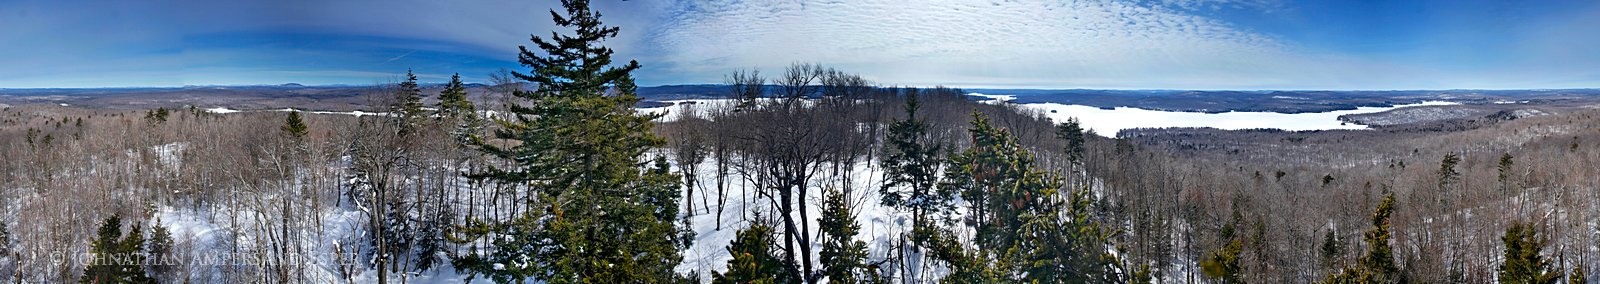 Cranberry Lake,spring,360 degree,Bear Mt,treetop,panorama,360 degree, photo